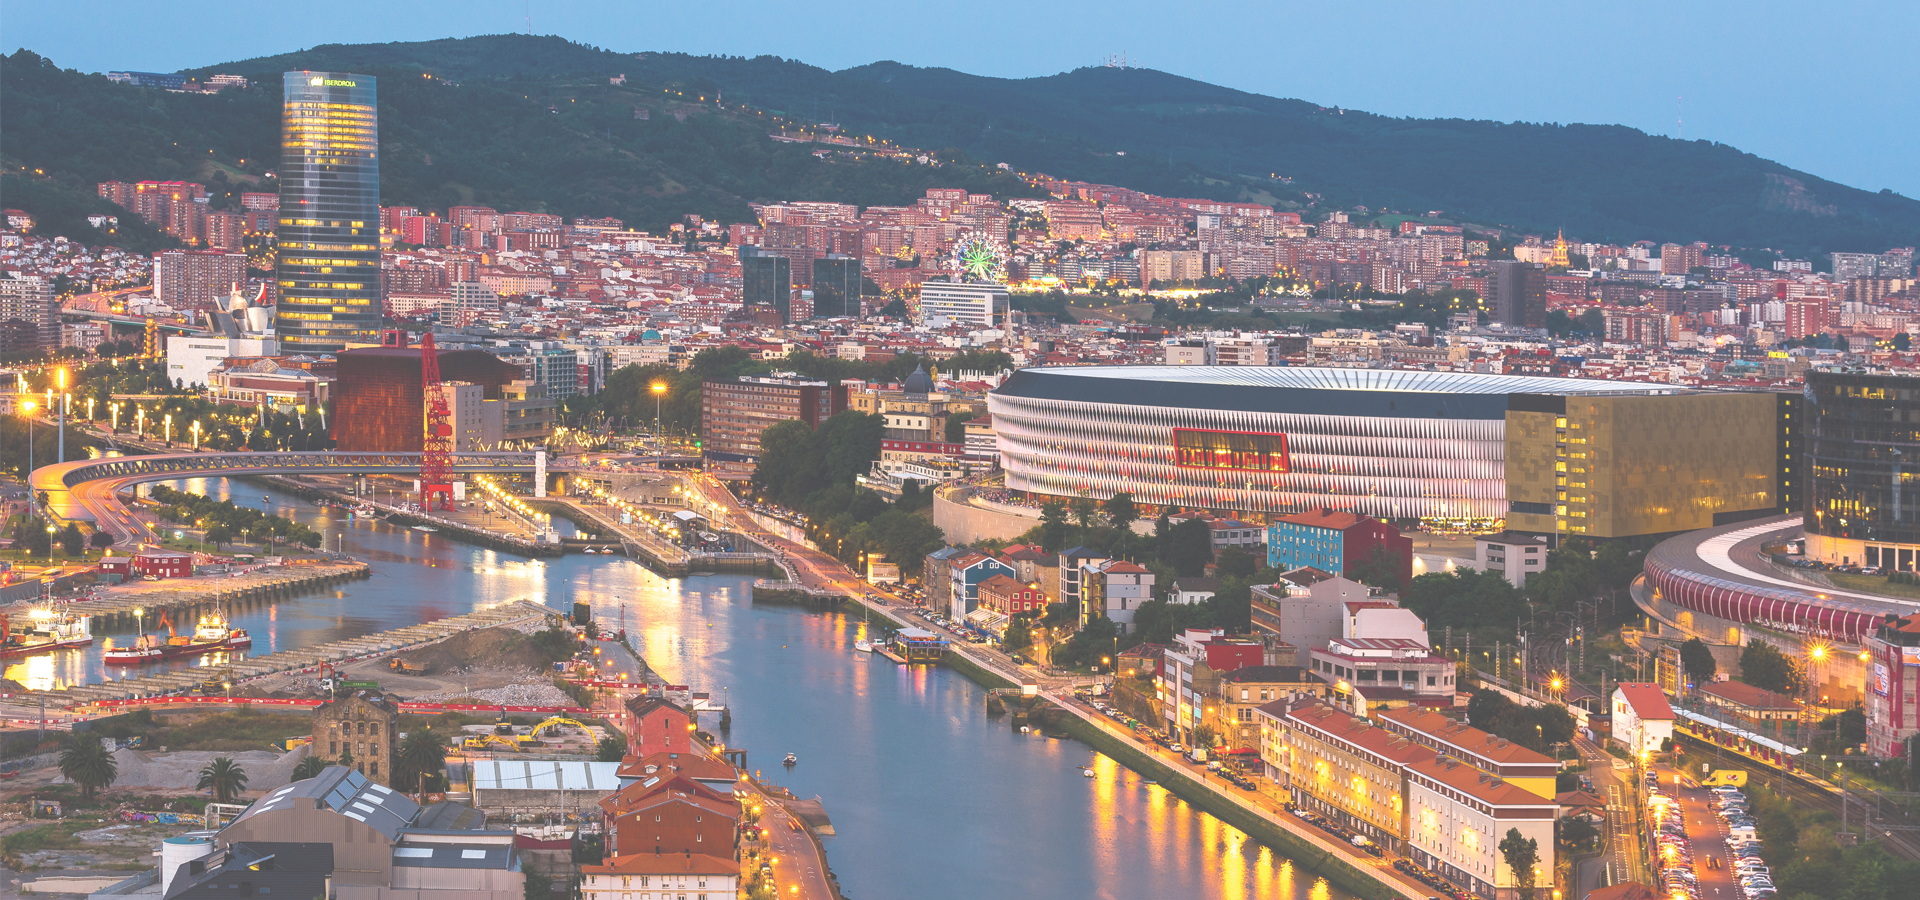 Peer-to-peer advisory in Bilbao, Province of Biscay, Basque Country, Spain